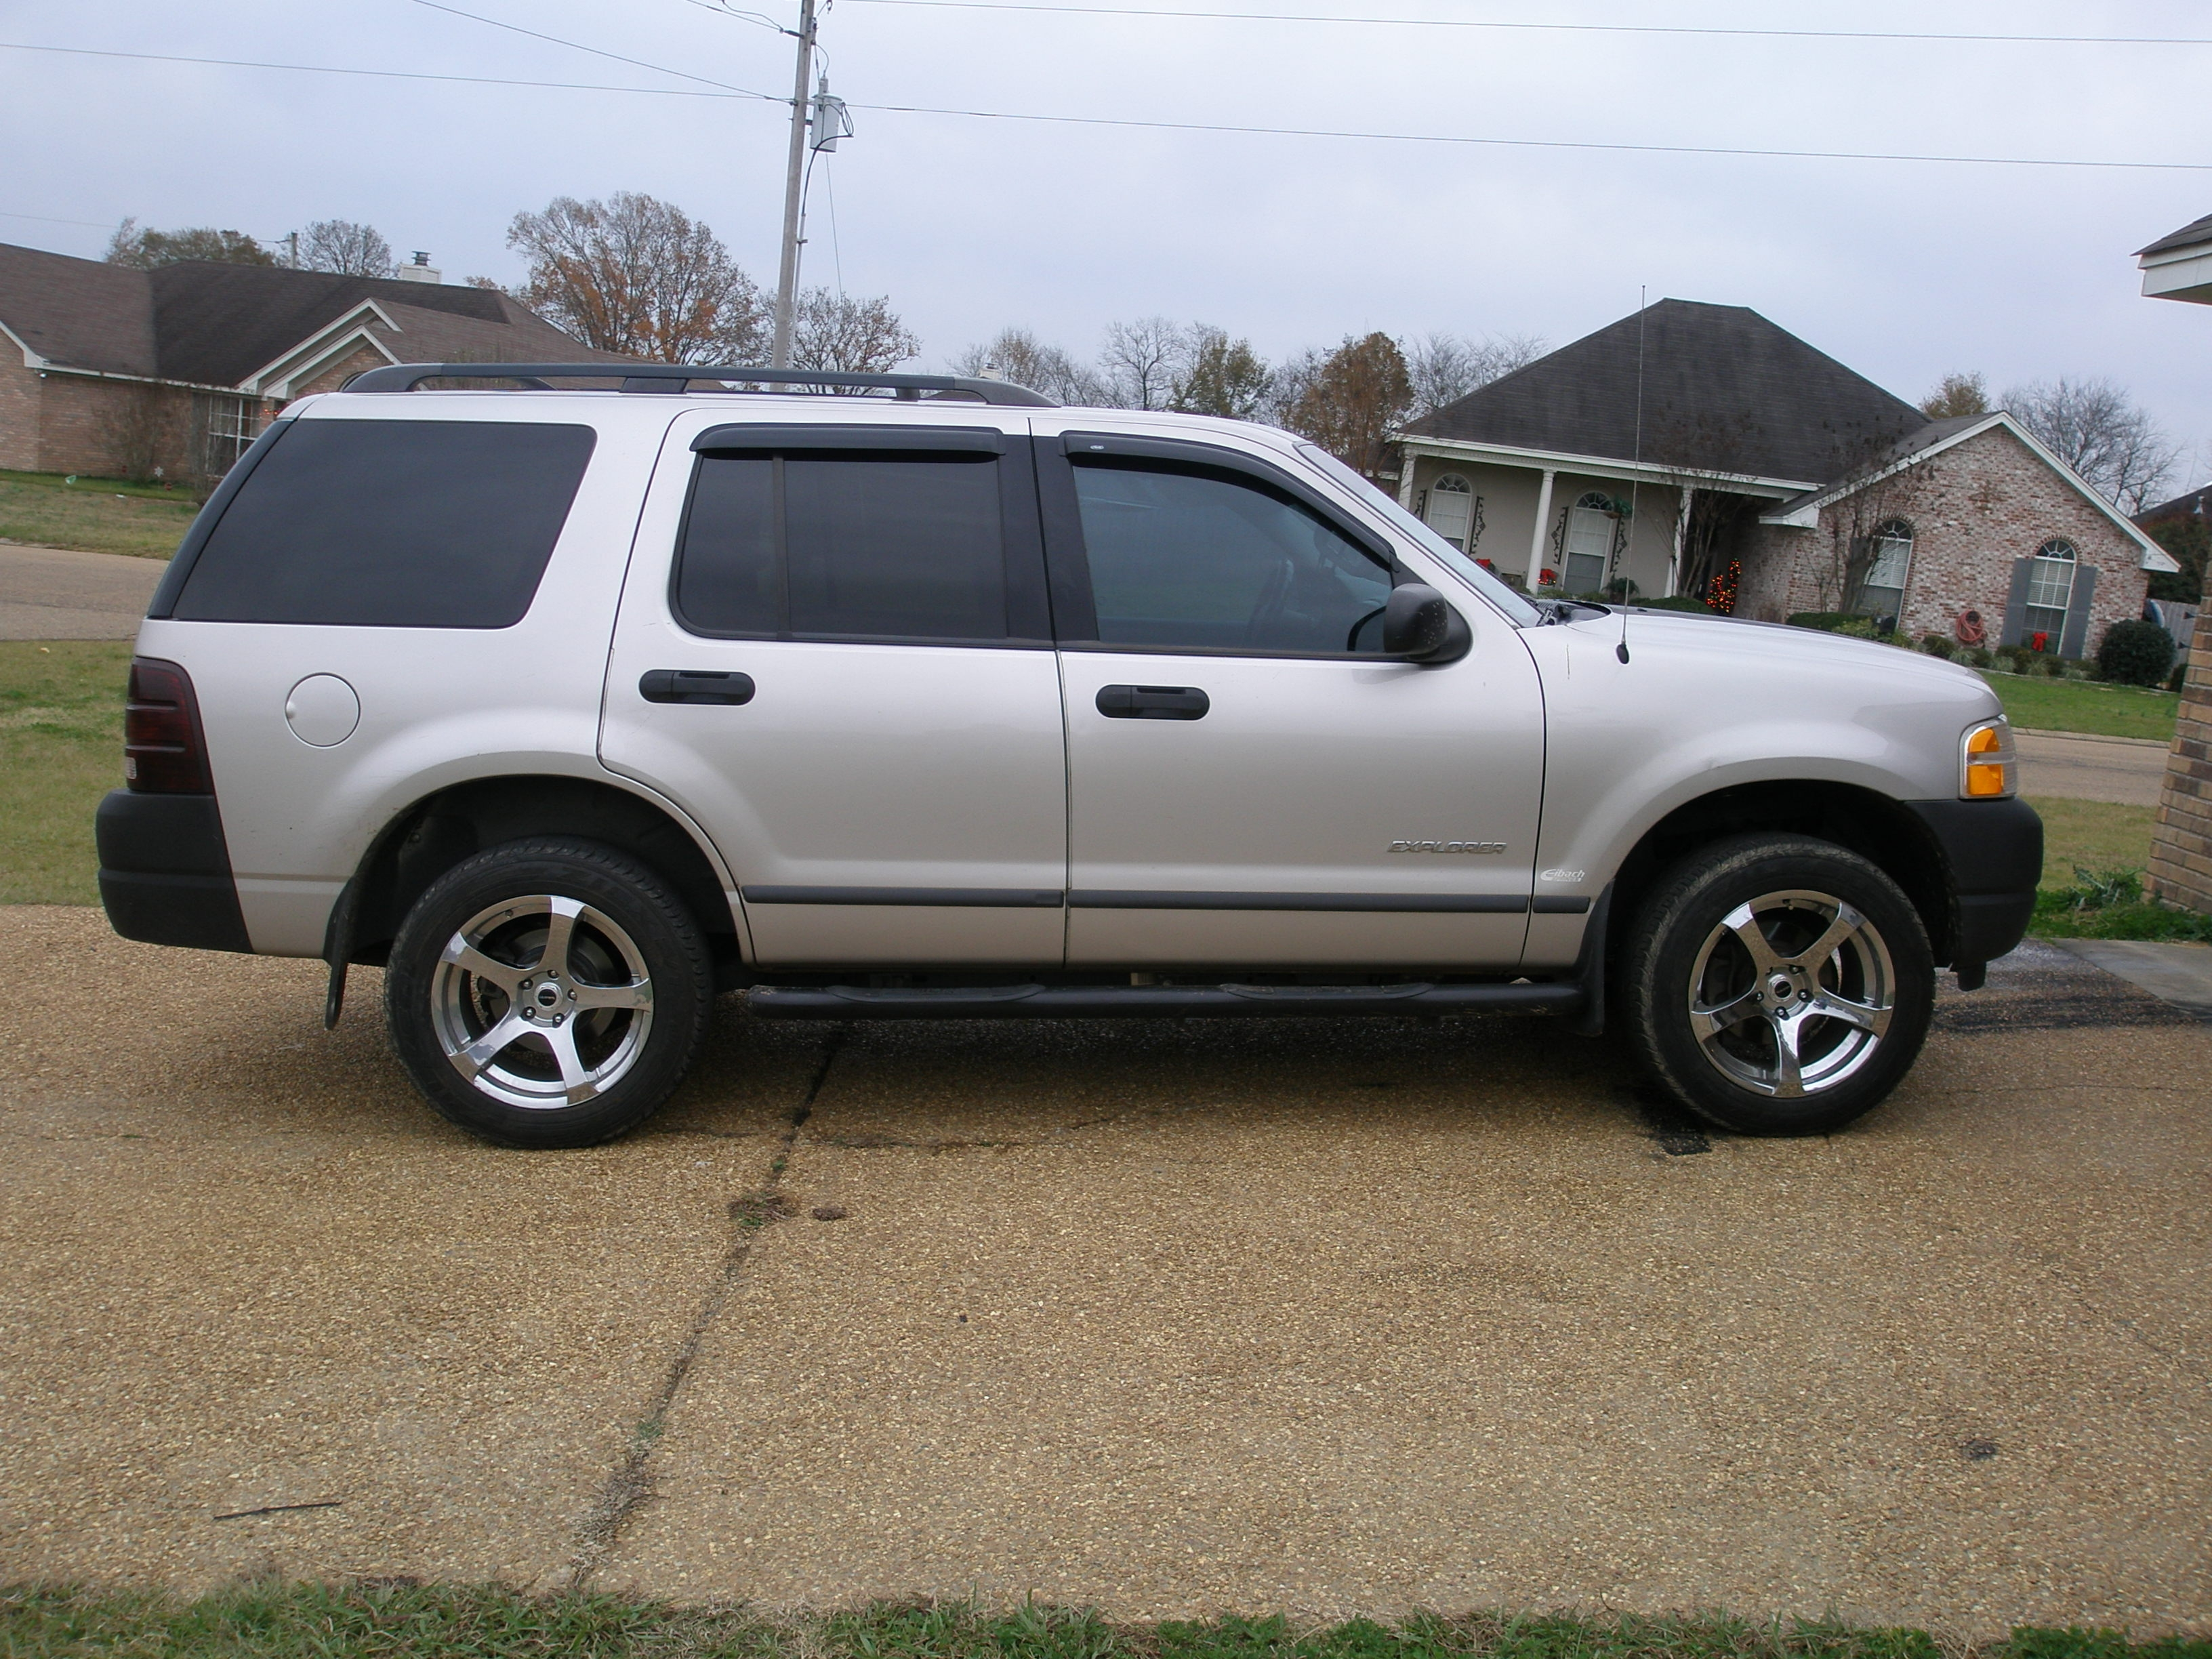 Rama1200 S 2004 Ford Explorer In Jackson Ms